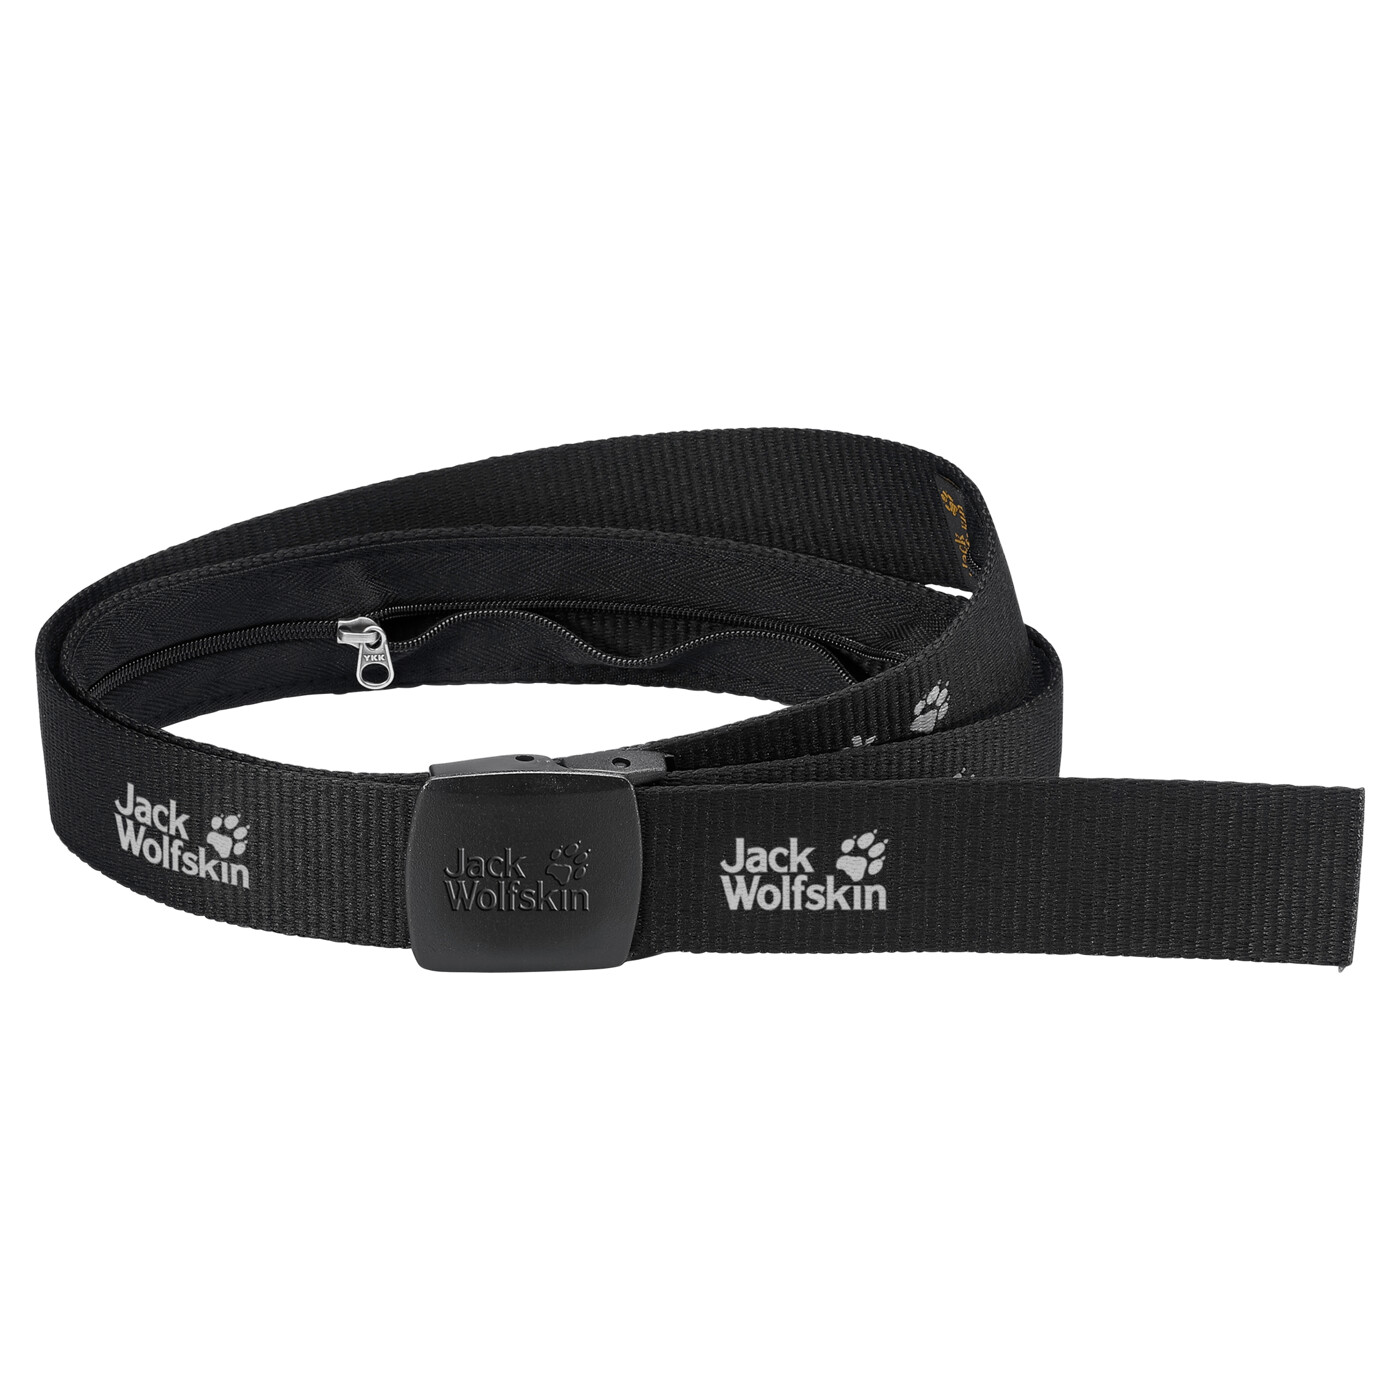 JACK-WOLFSKIN SECRET BELT WIDE - Herren